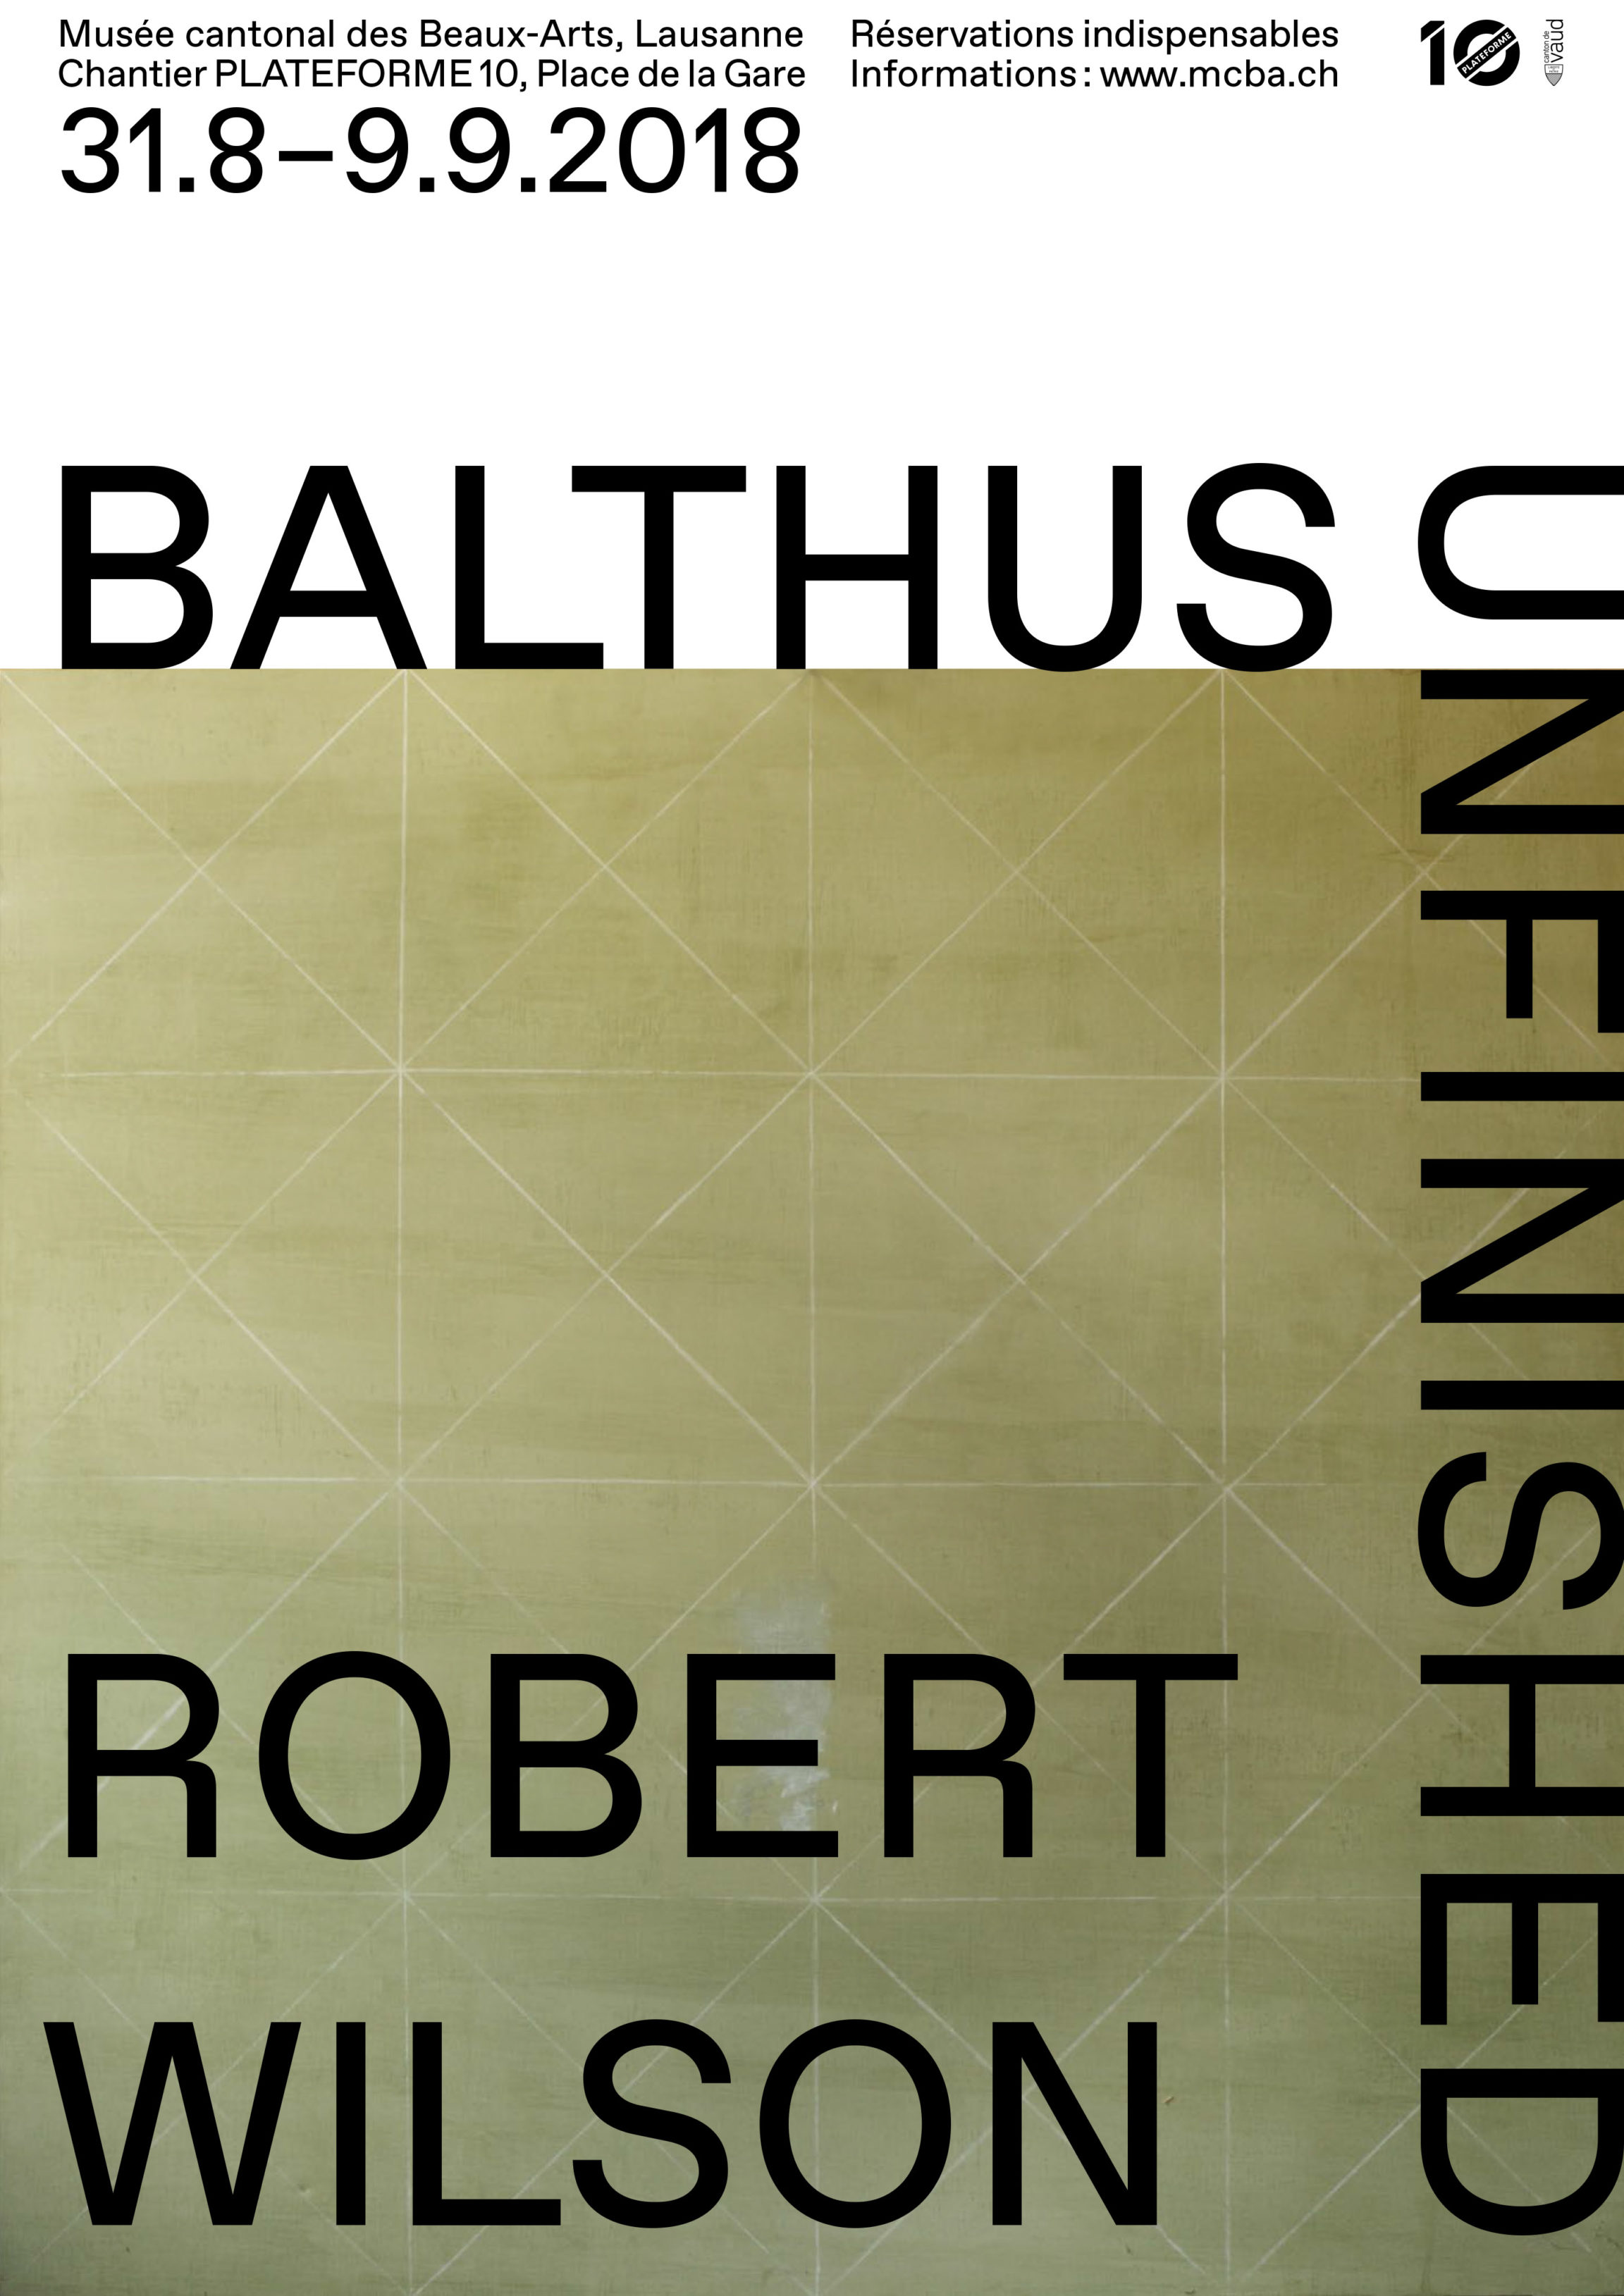 Robert Wilson. <br>Balthus Unfinished